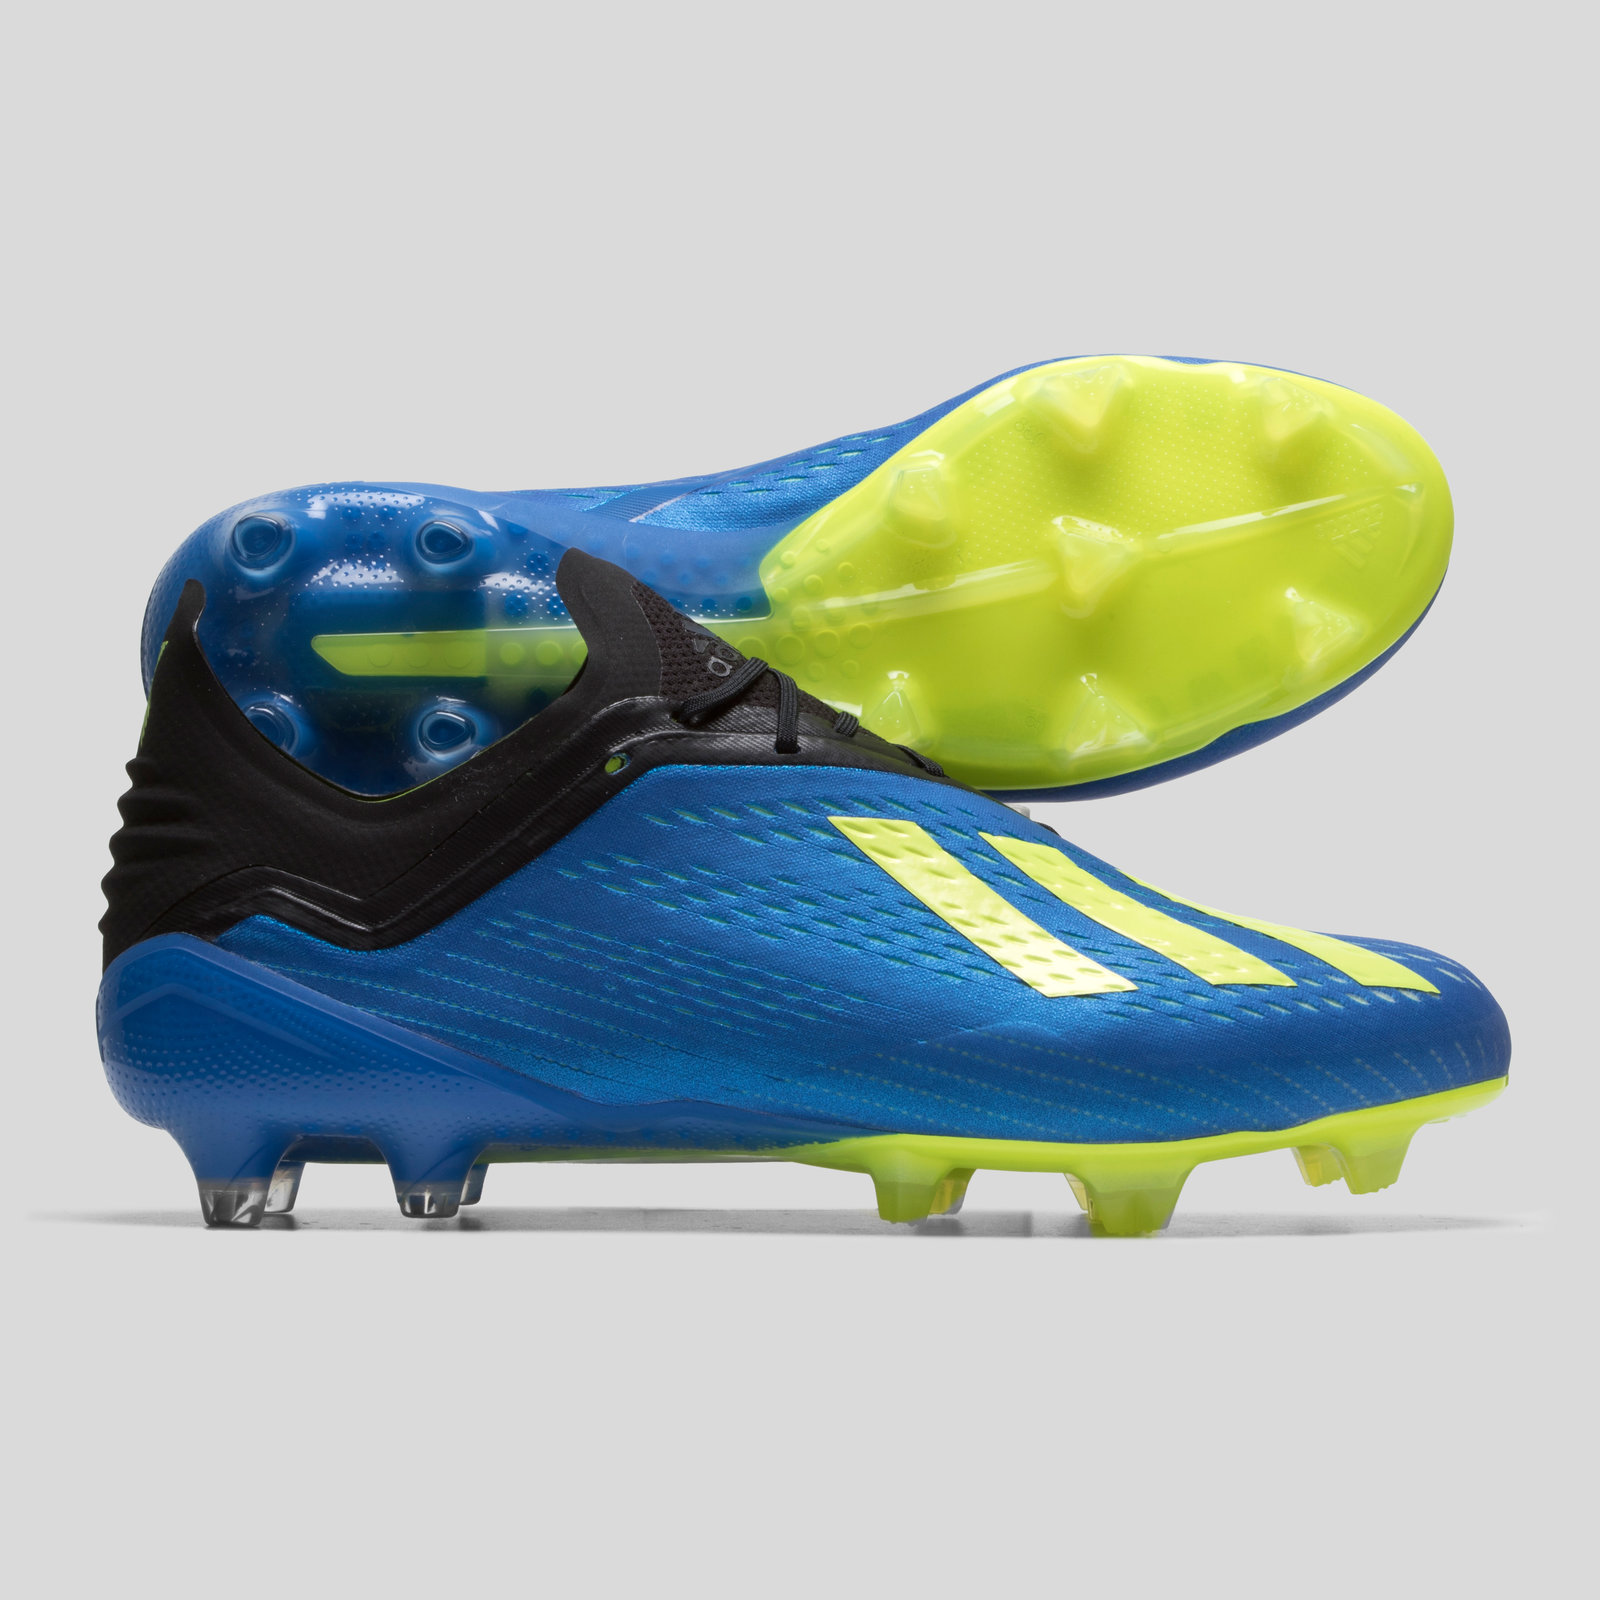 4c28ab0c6f13 adidas Mens X 18.1 Firm Ground Football Boots Studs Trainers Sports Shoes  Blue